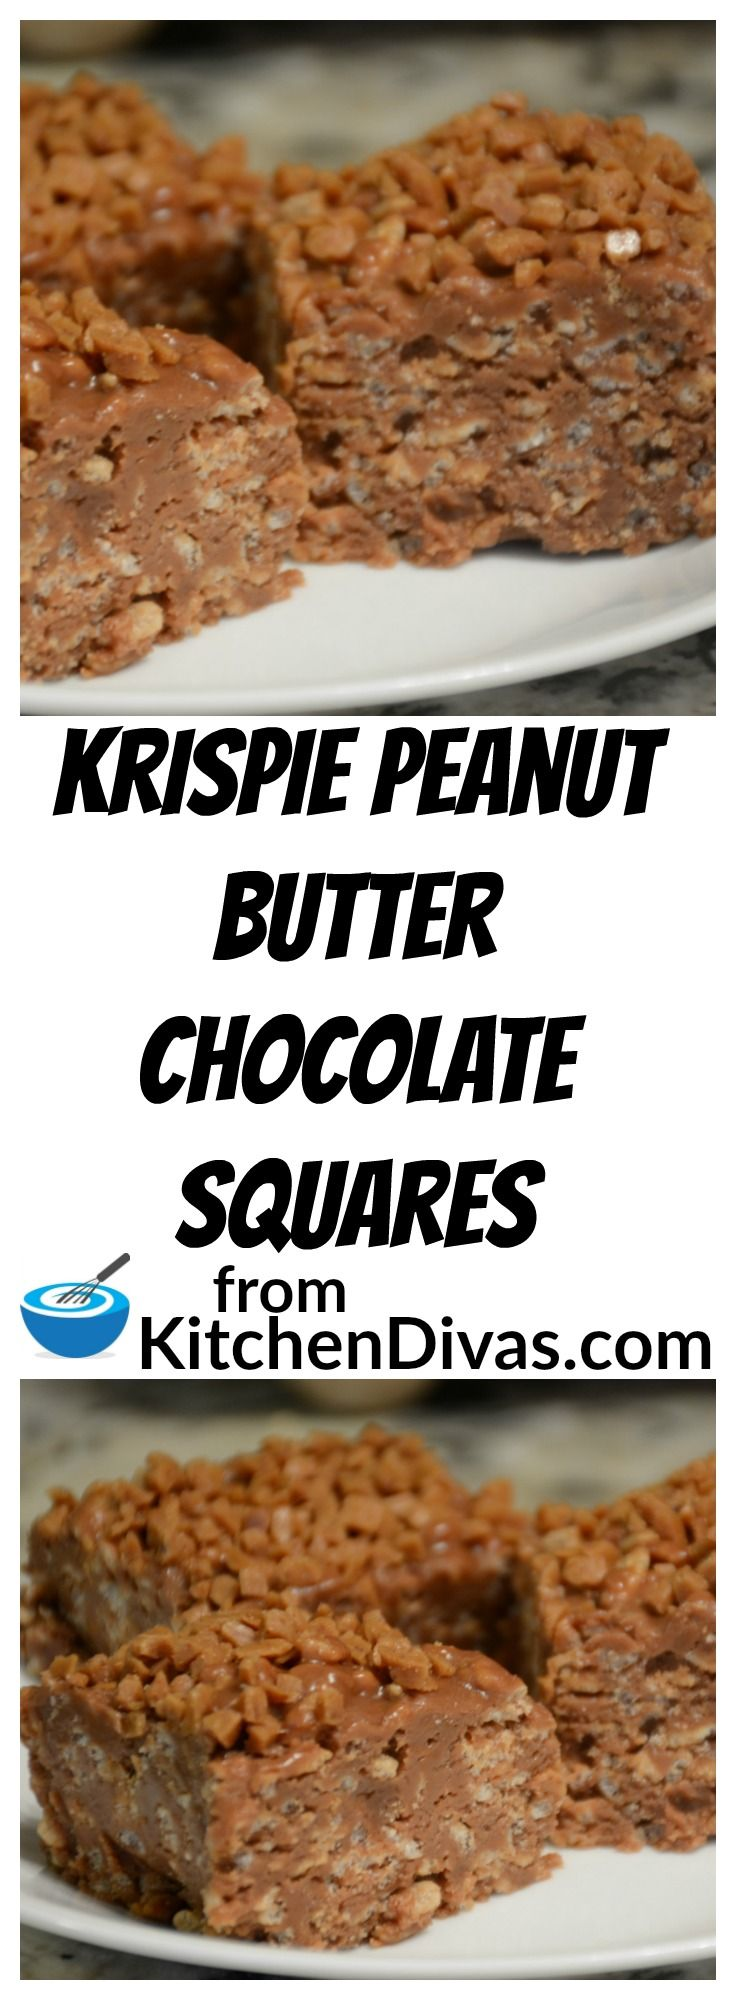 If you love chocolate, peanut butter and Rice Krispies you will love Krispie Peanut Butter Chocolate Squares!